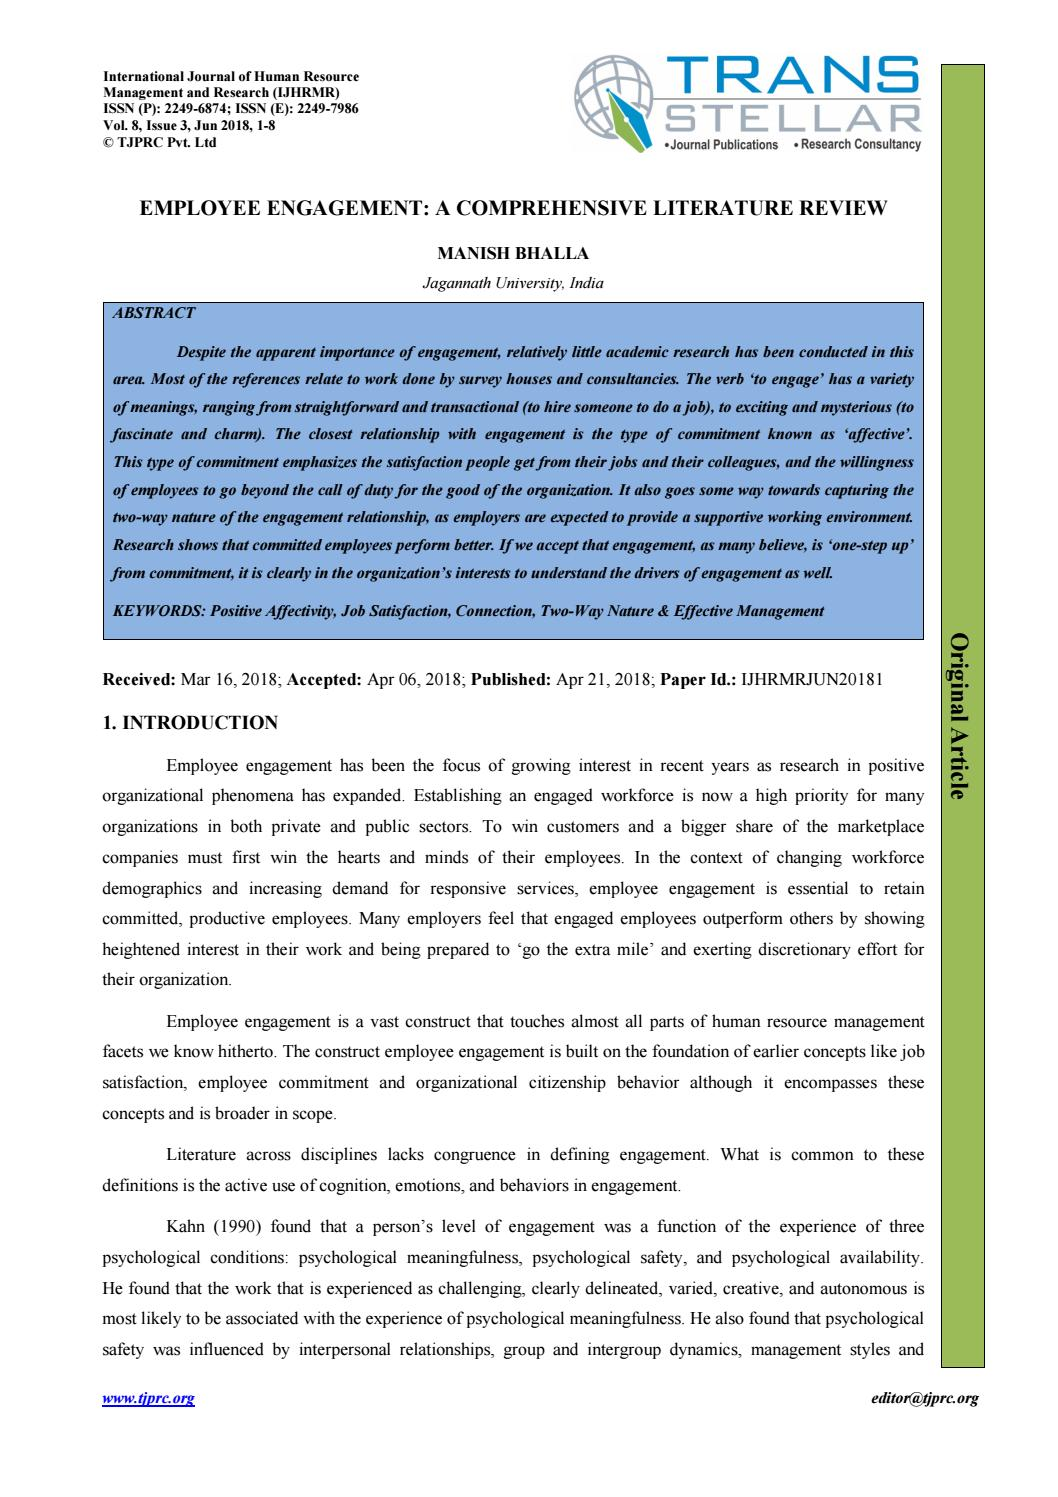 Literature review employee communication resume button on hp printer